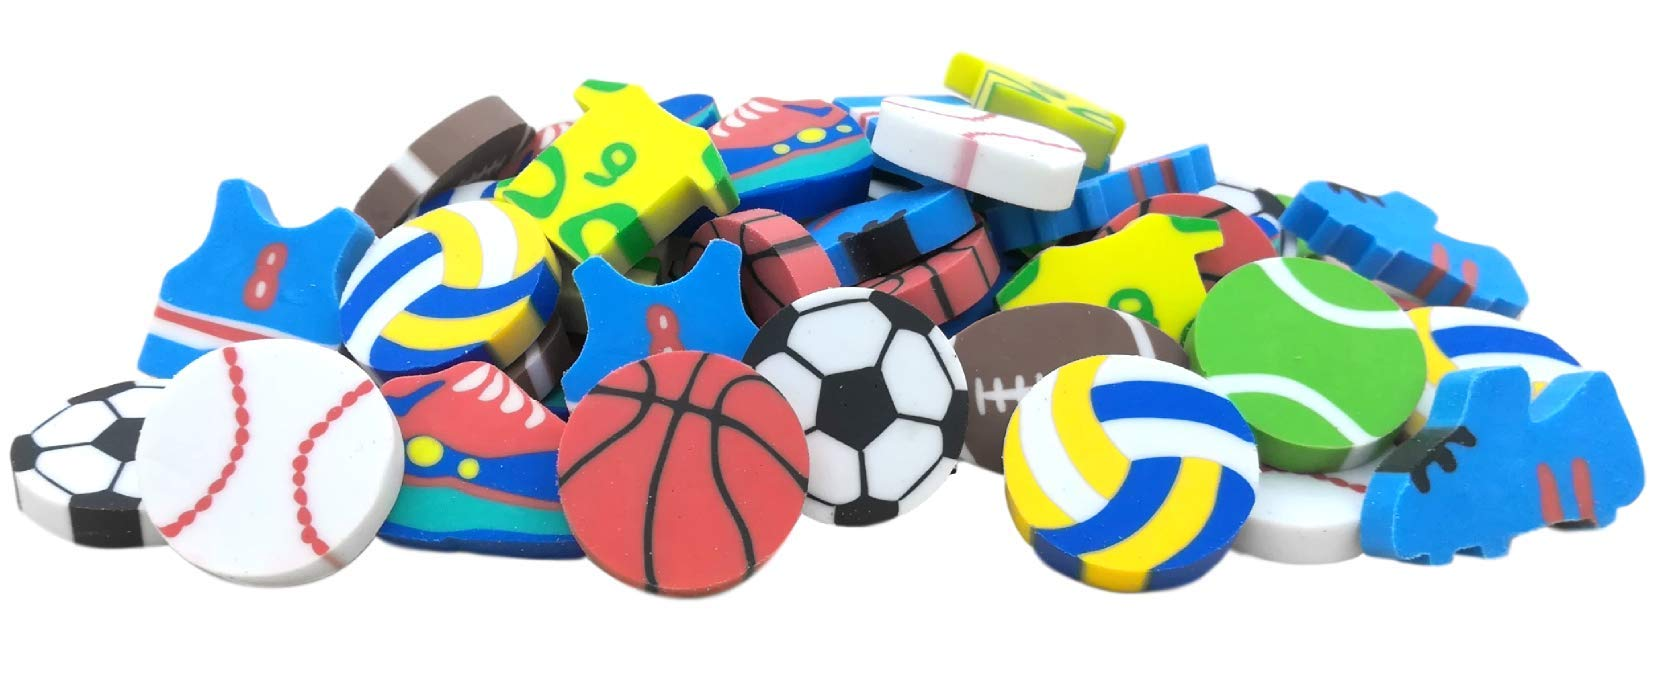 OHill Pack of 100 Sports Pencil Erasers Novelty Erasers for Sports Party Favors for Kids School Classroom Prizes Rewards Valued Pack by OHill (Image #3)